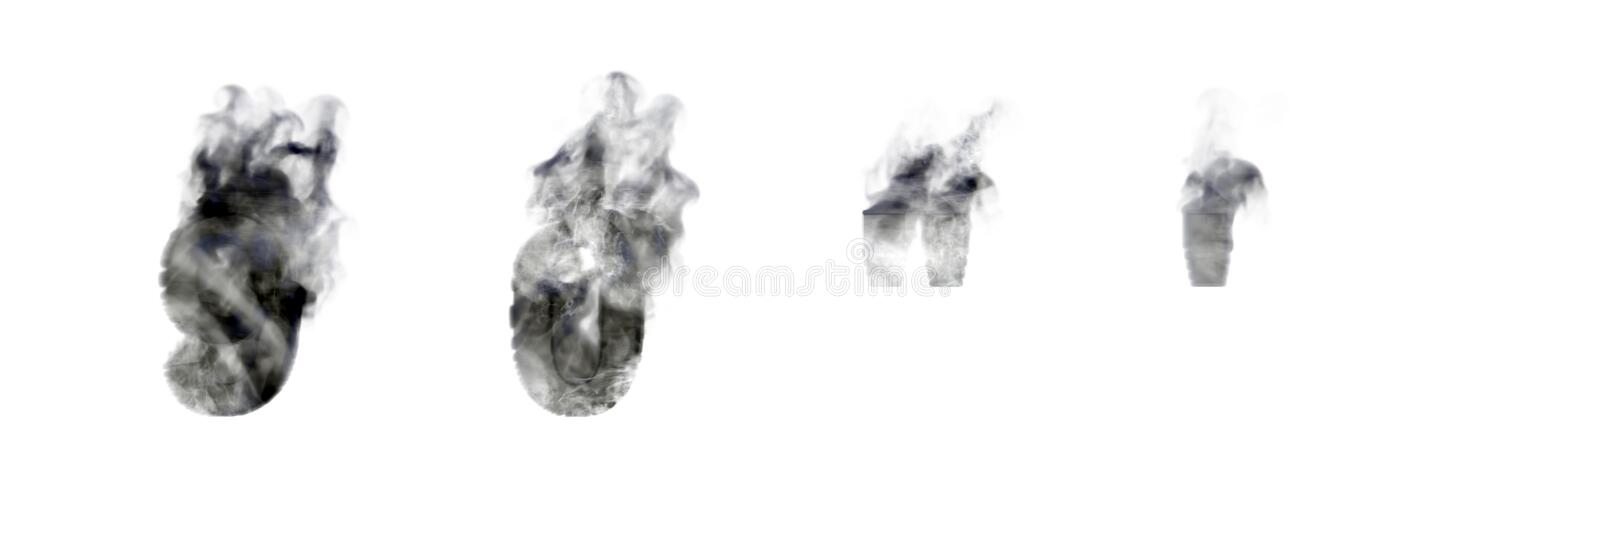 Dark smoke numbers 9 and 0, apostrophe and quotations marks isolated on white background, disaster or magic concept alphabet - 3D royalty free illustration